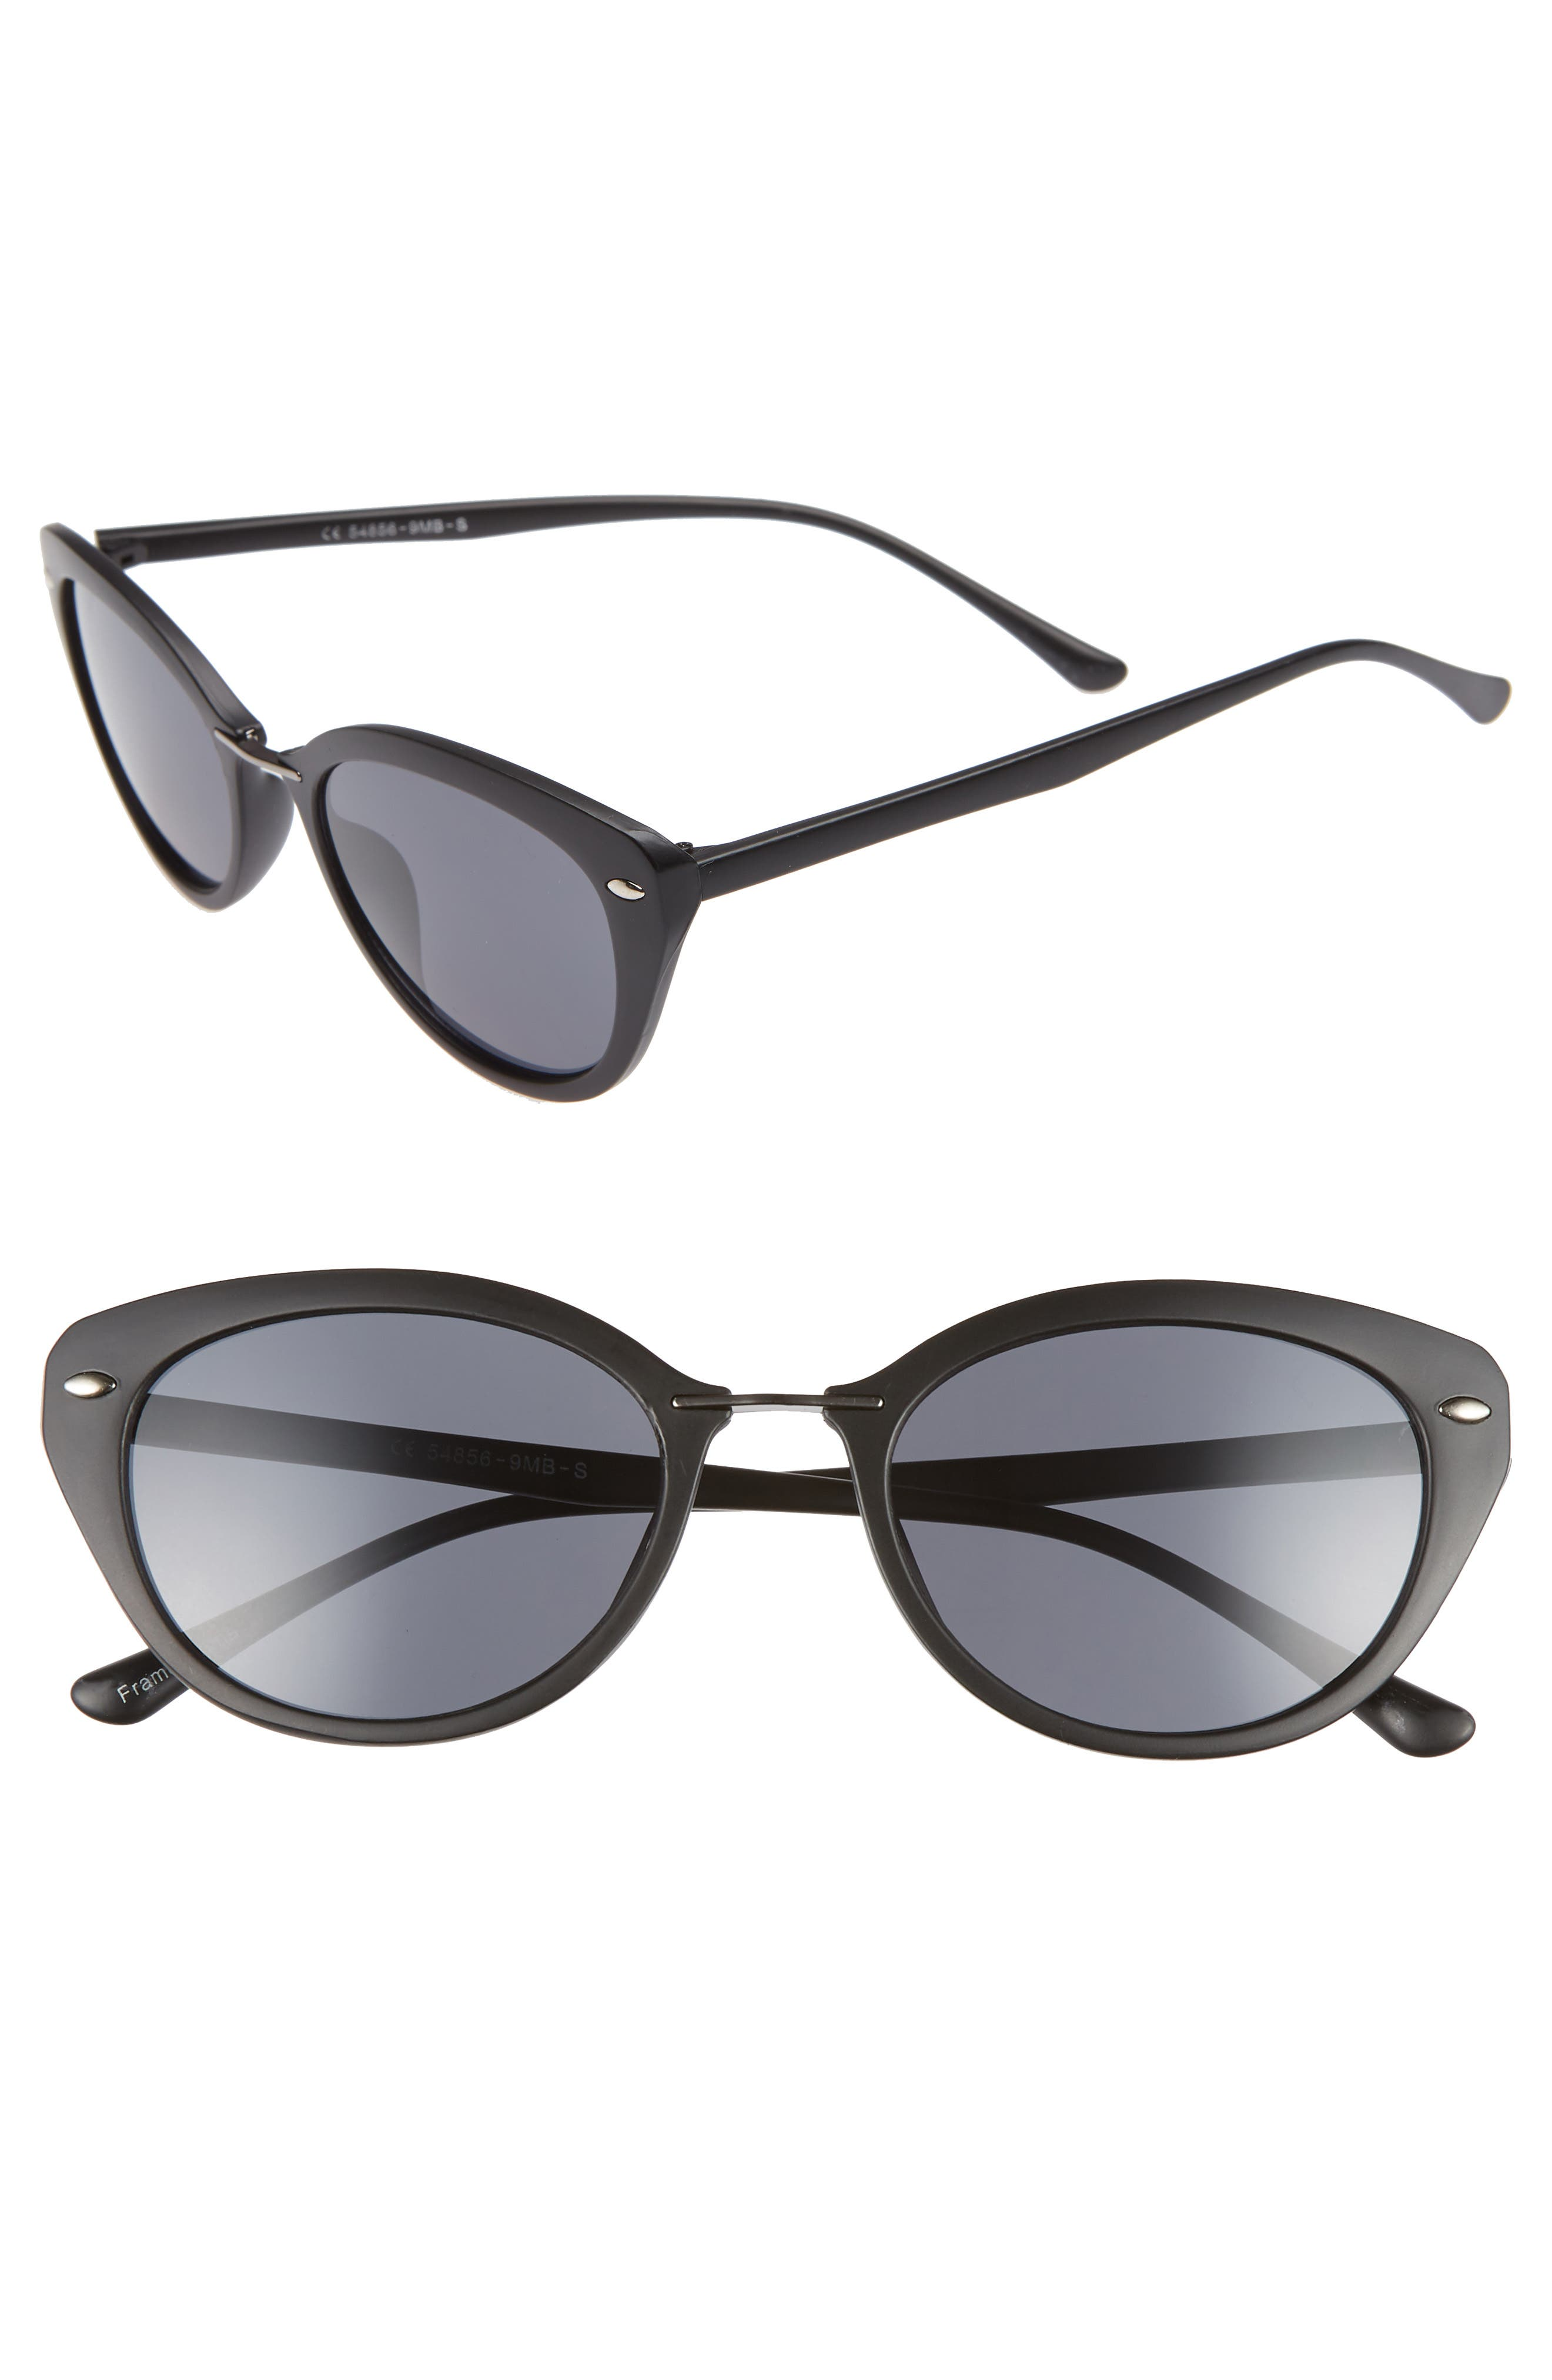 51mm Oval Sunglasses,                         Main,                         color, BLACK